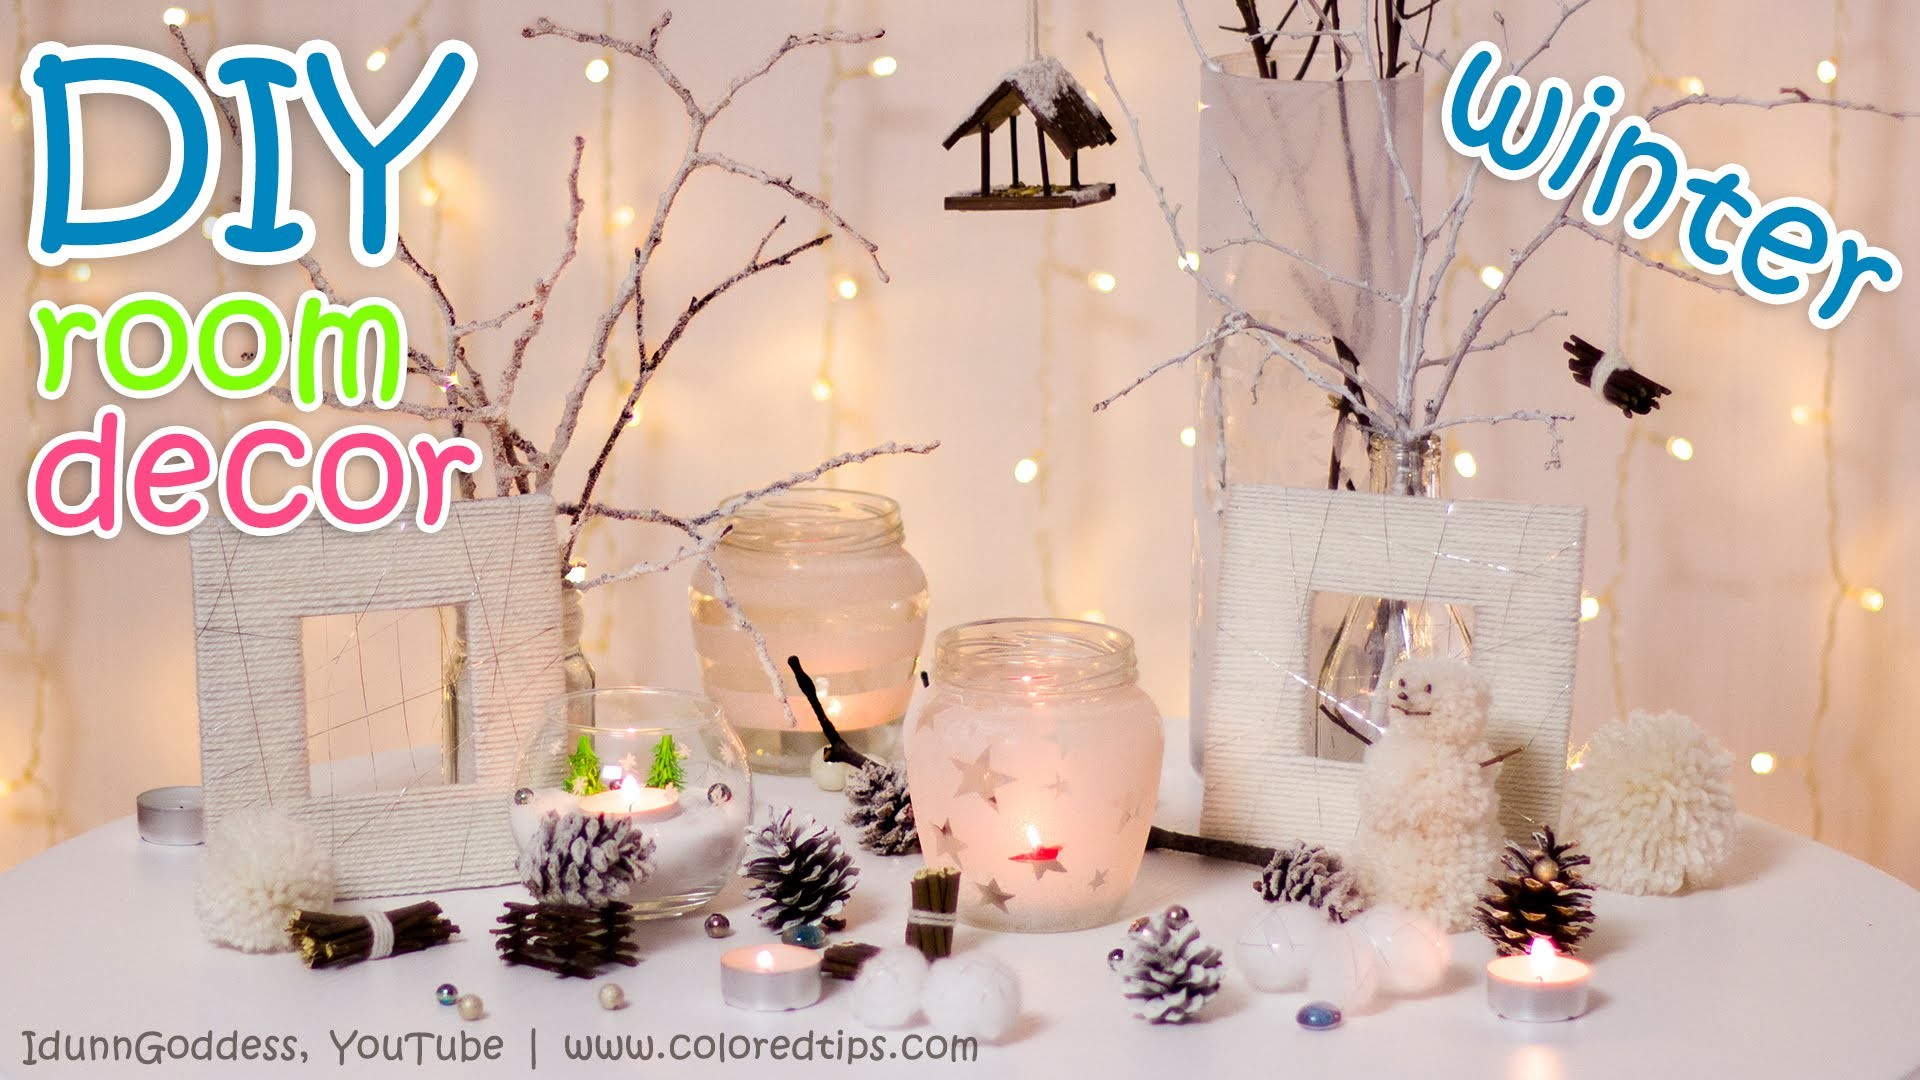 10 DIY Winter Room Decor Ideas